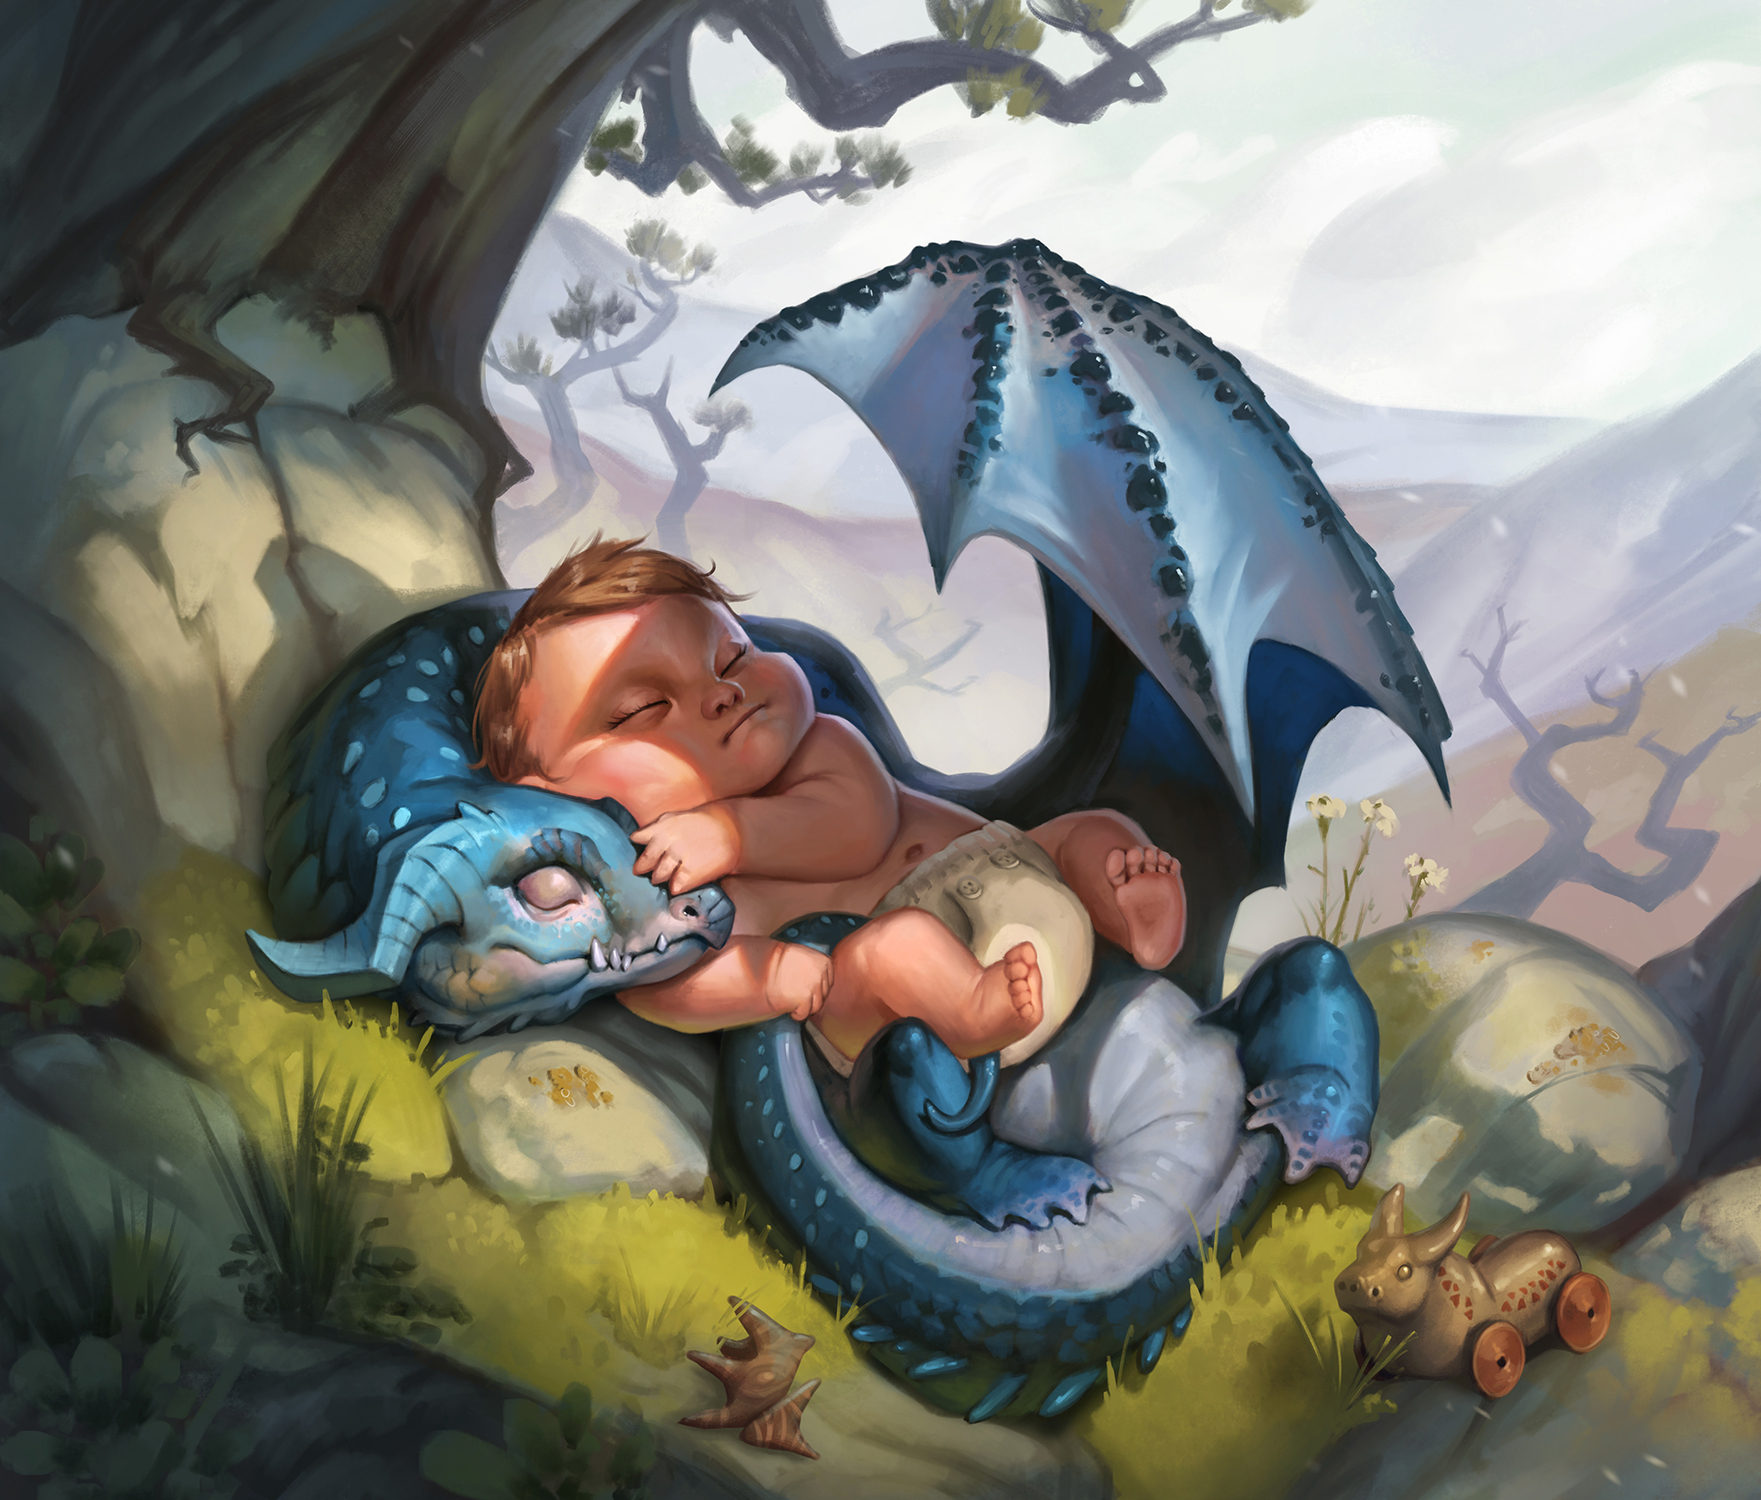 Nanny Dragon Artwork by Milica Celikovic